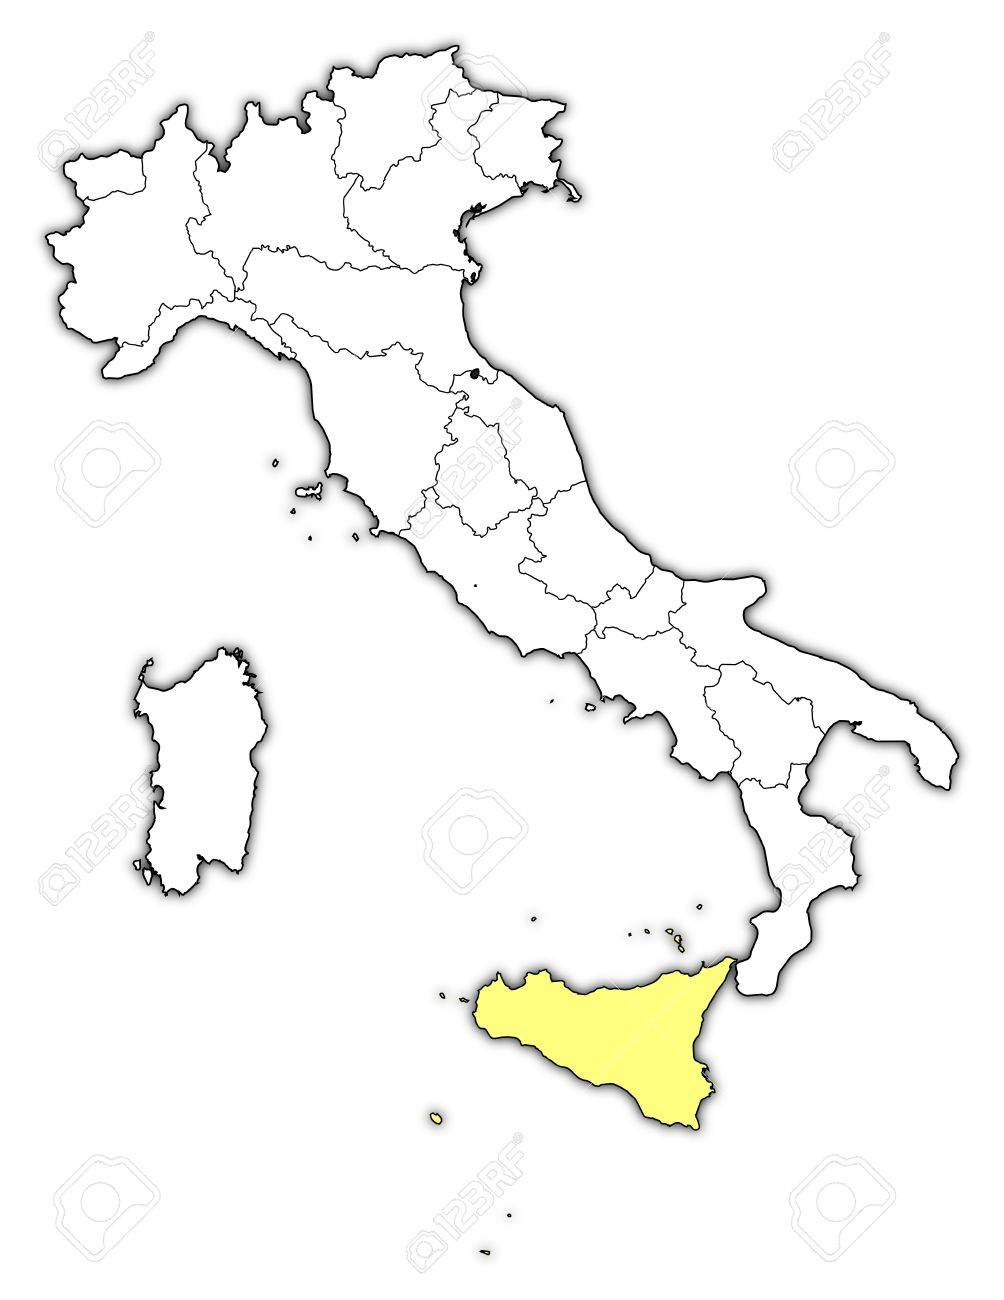 Political Map Of Italy With The Several Regions Where Sicily ...